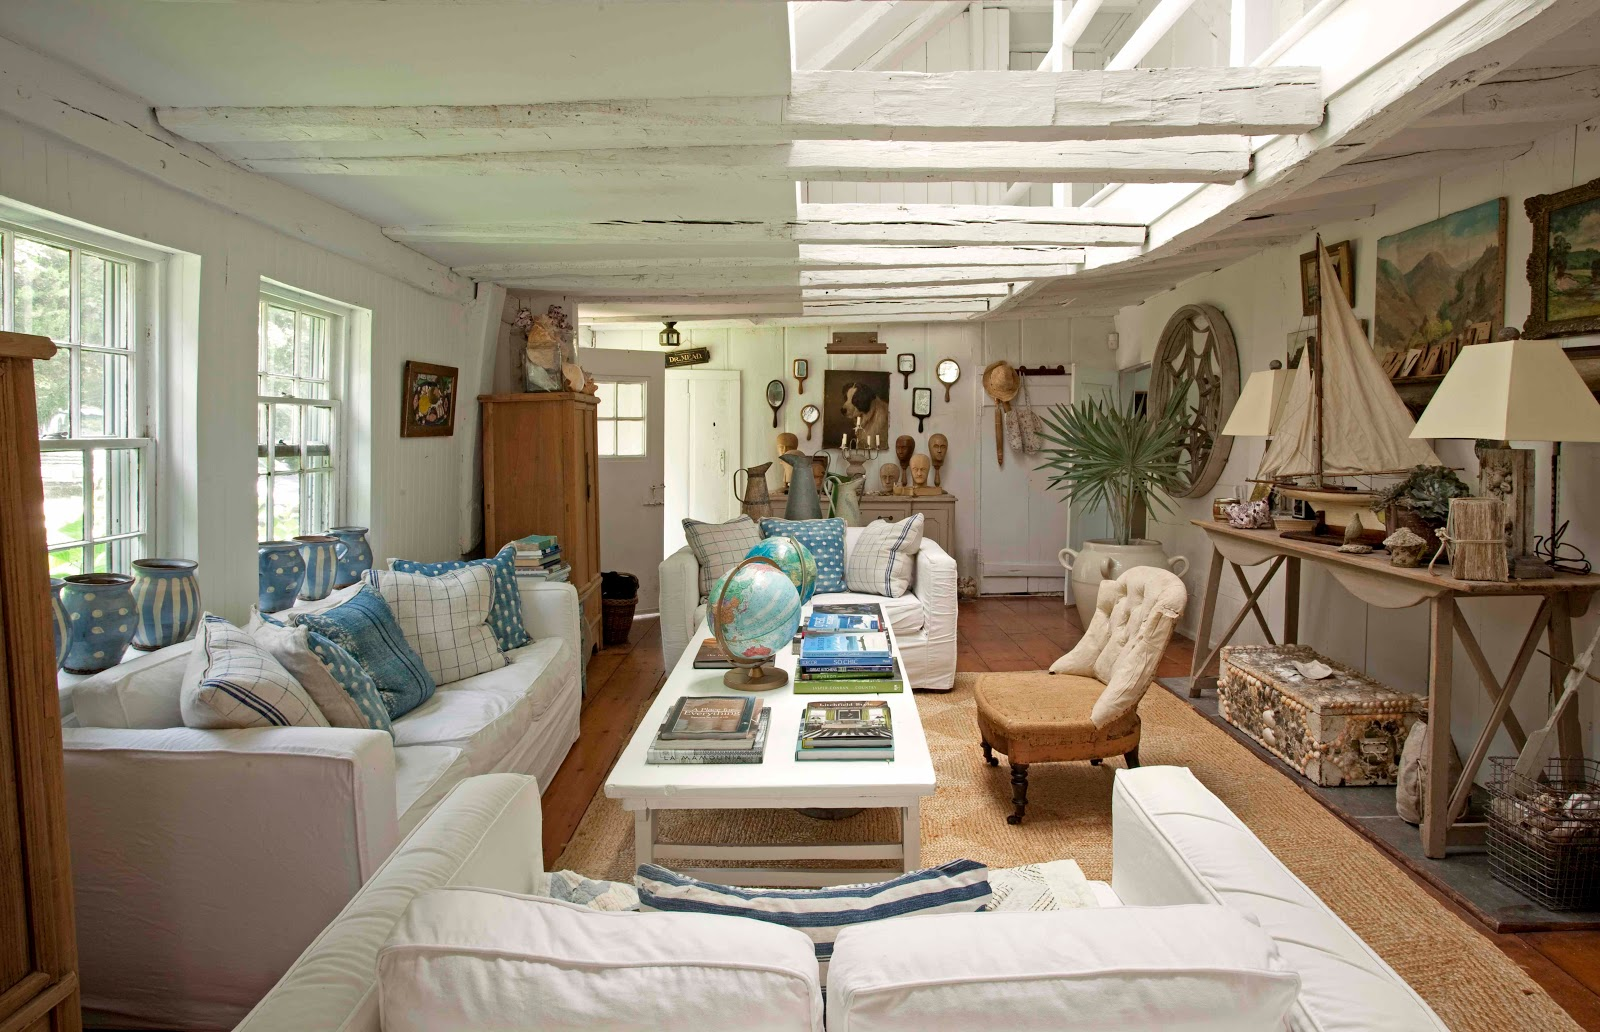 Country Beach Decorating Ideas : STYLEBEAT: SEASIDE CHARM: ROOMS THAT INSPIRE BY THE SEA